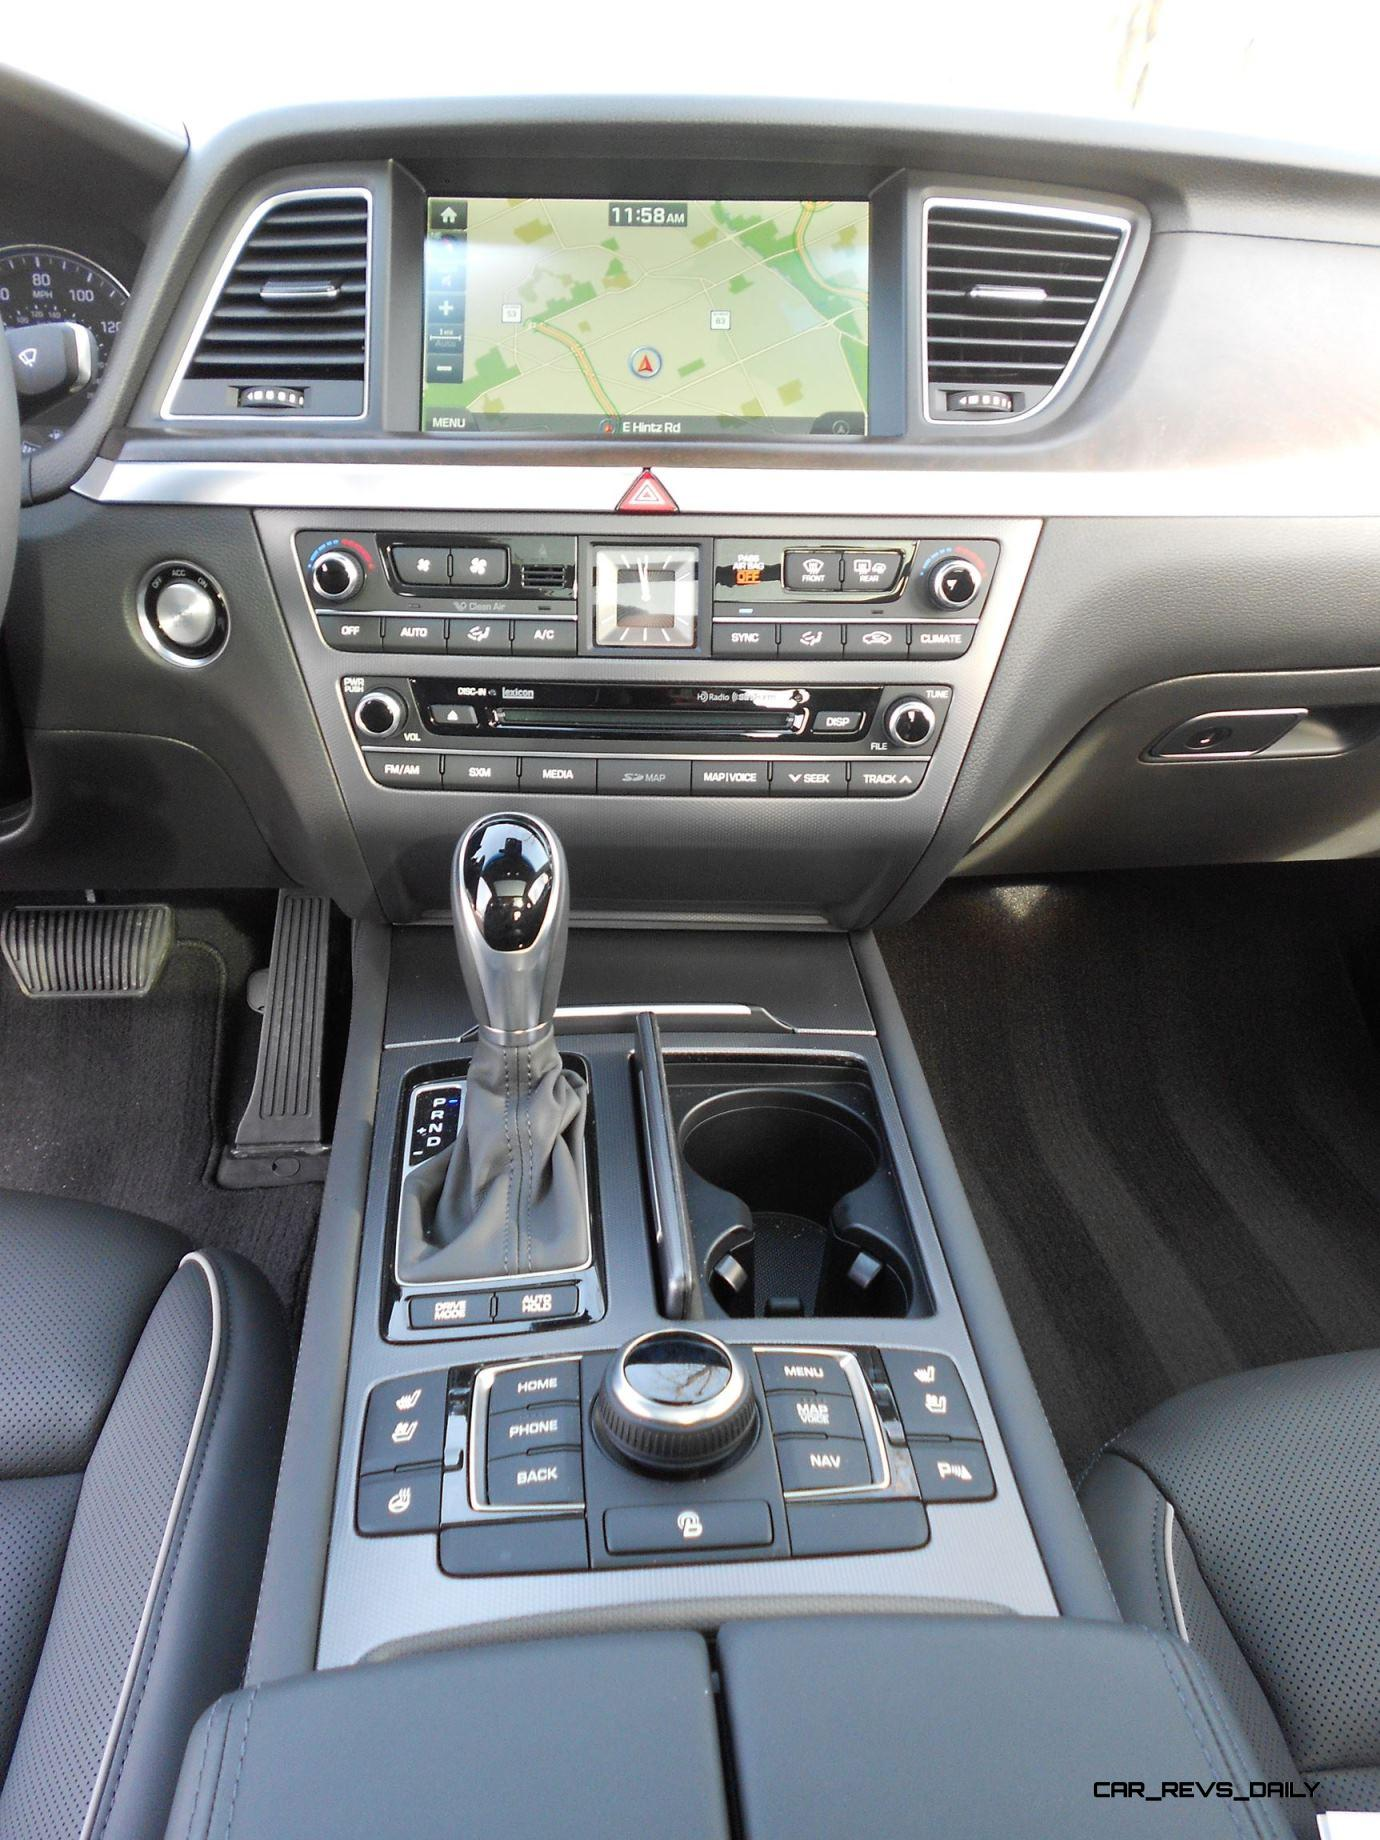 2016 Hyundai Genesis Awd 3 8 Review Interior 6